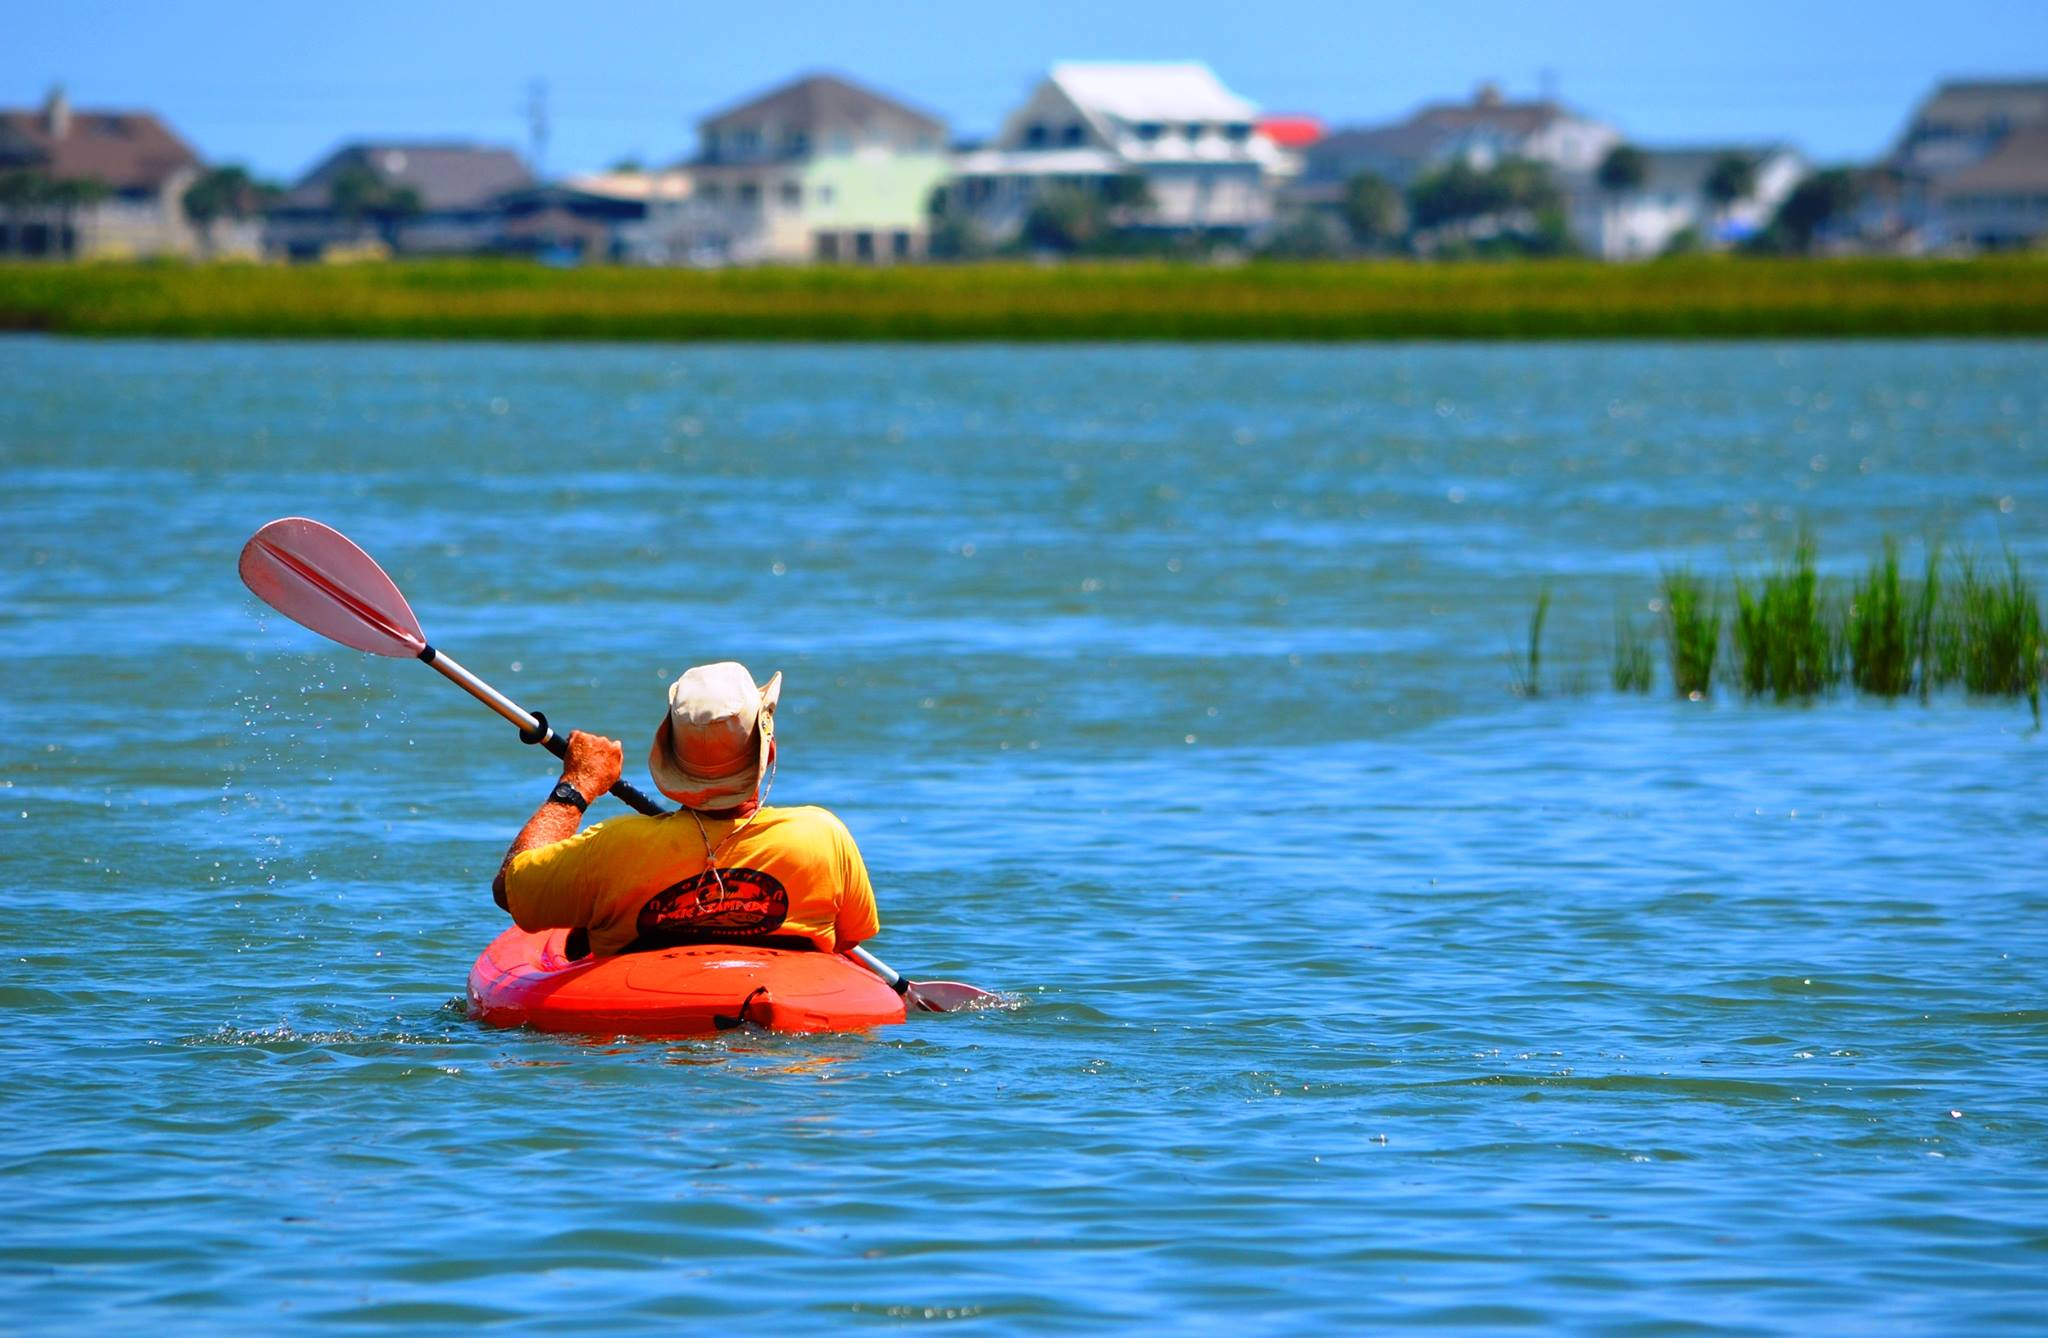 Kayaking for Fun and Exercise